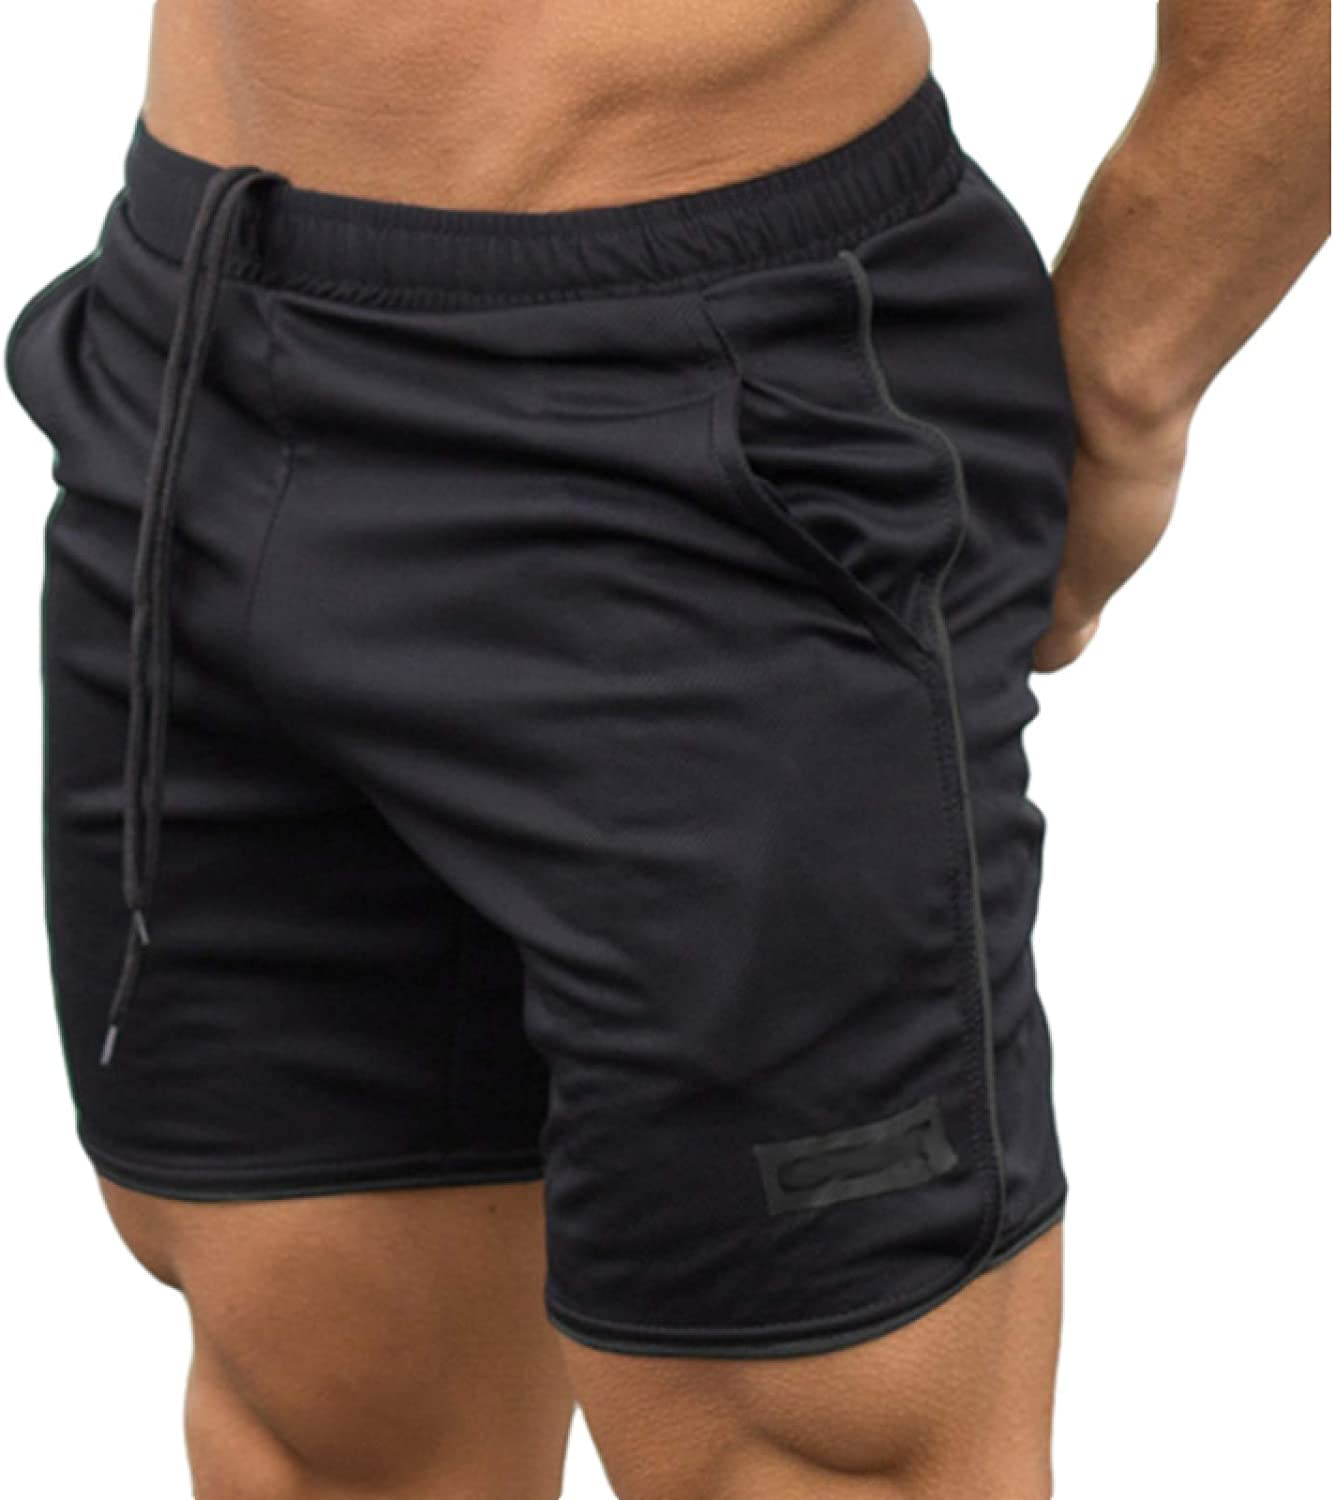 Segindy Men's Loose Fitness Shorts Summer Breathable Casual Elasticated Waist Running